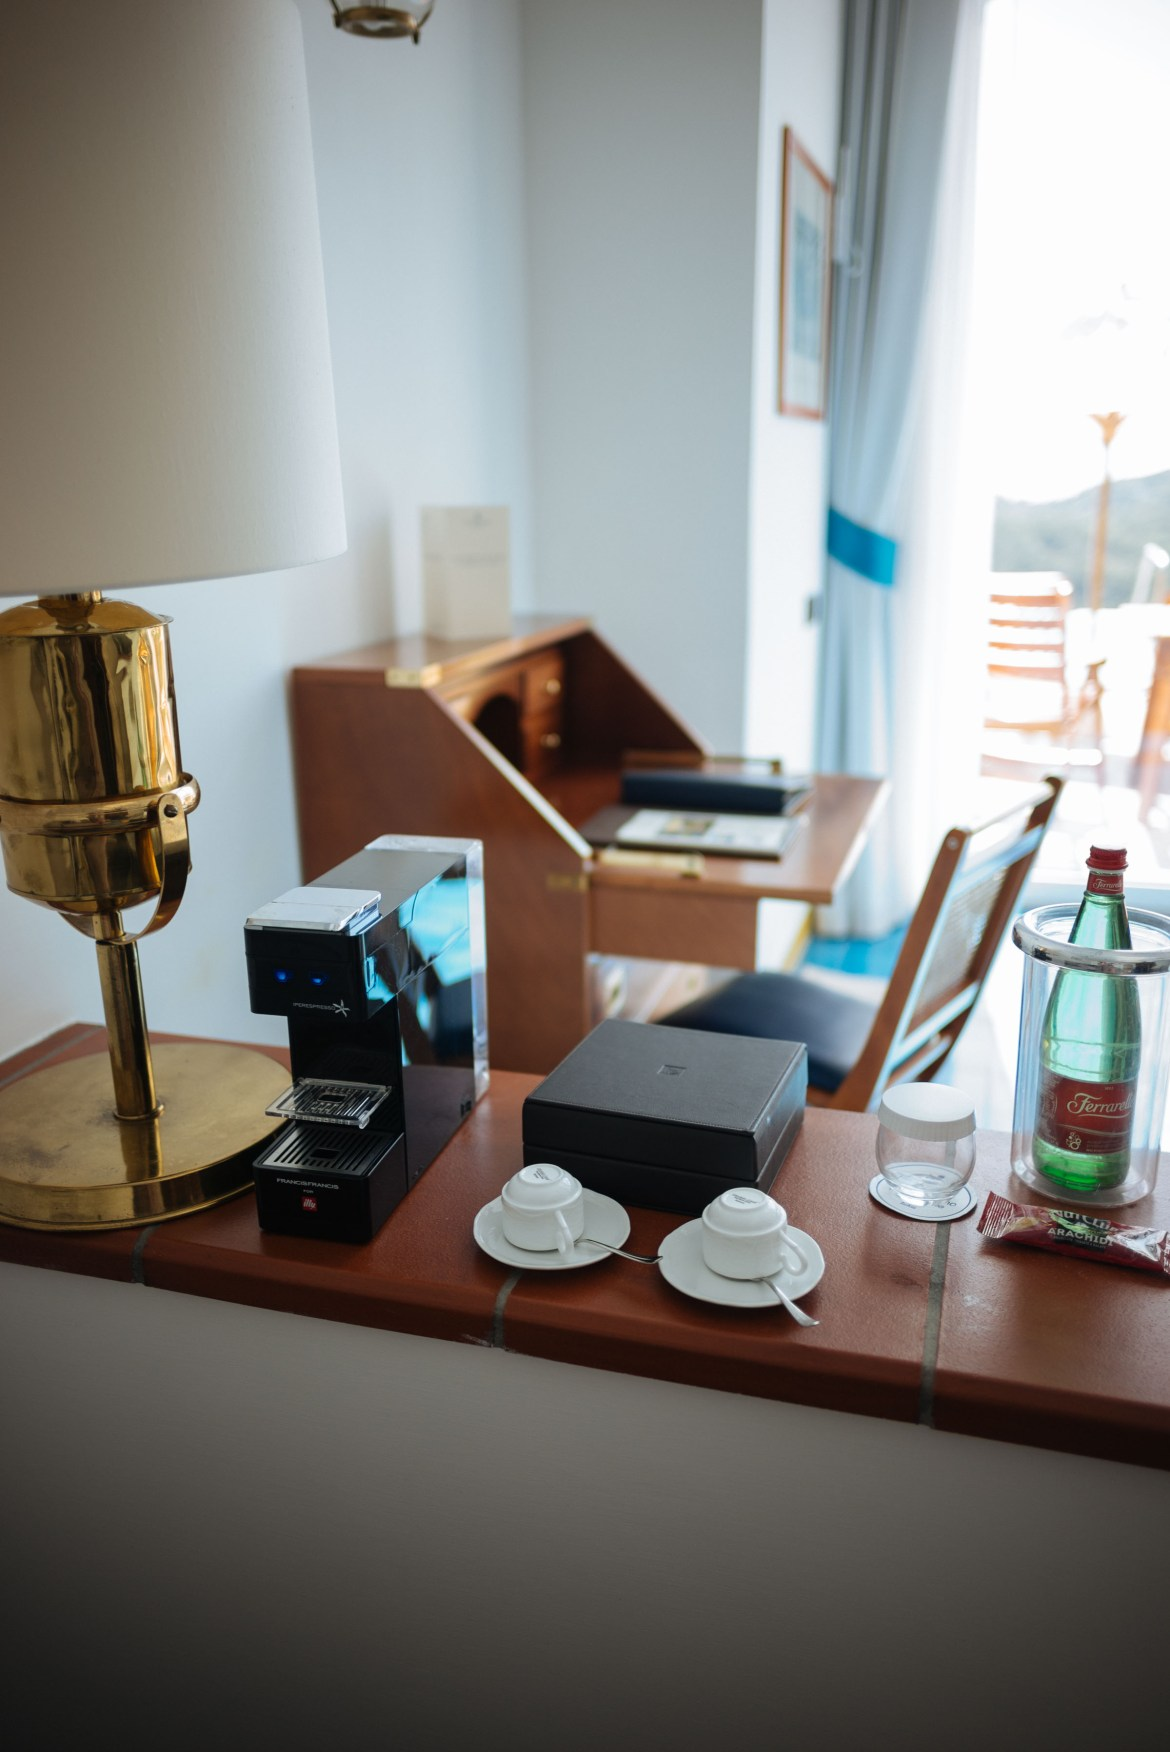 Start your day with espresso at the San Montano Resort & Spa   thetasteedit.com #italy #travel #hotel #spa